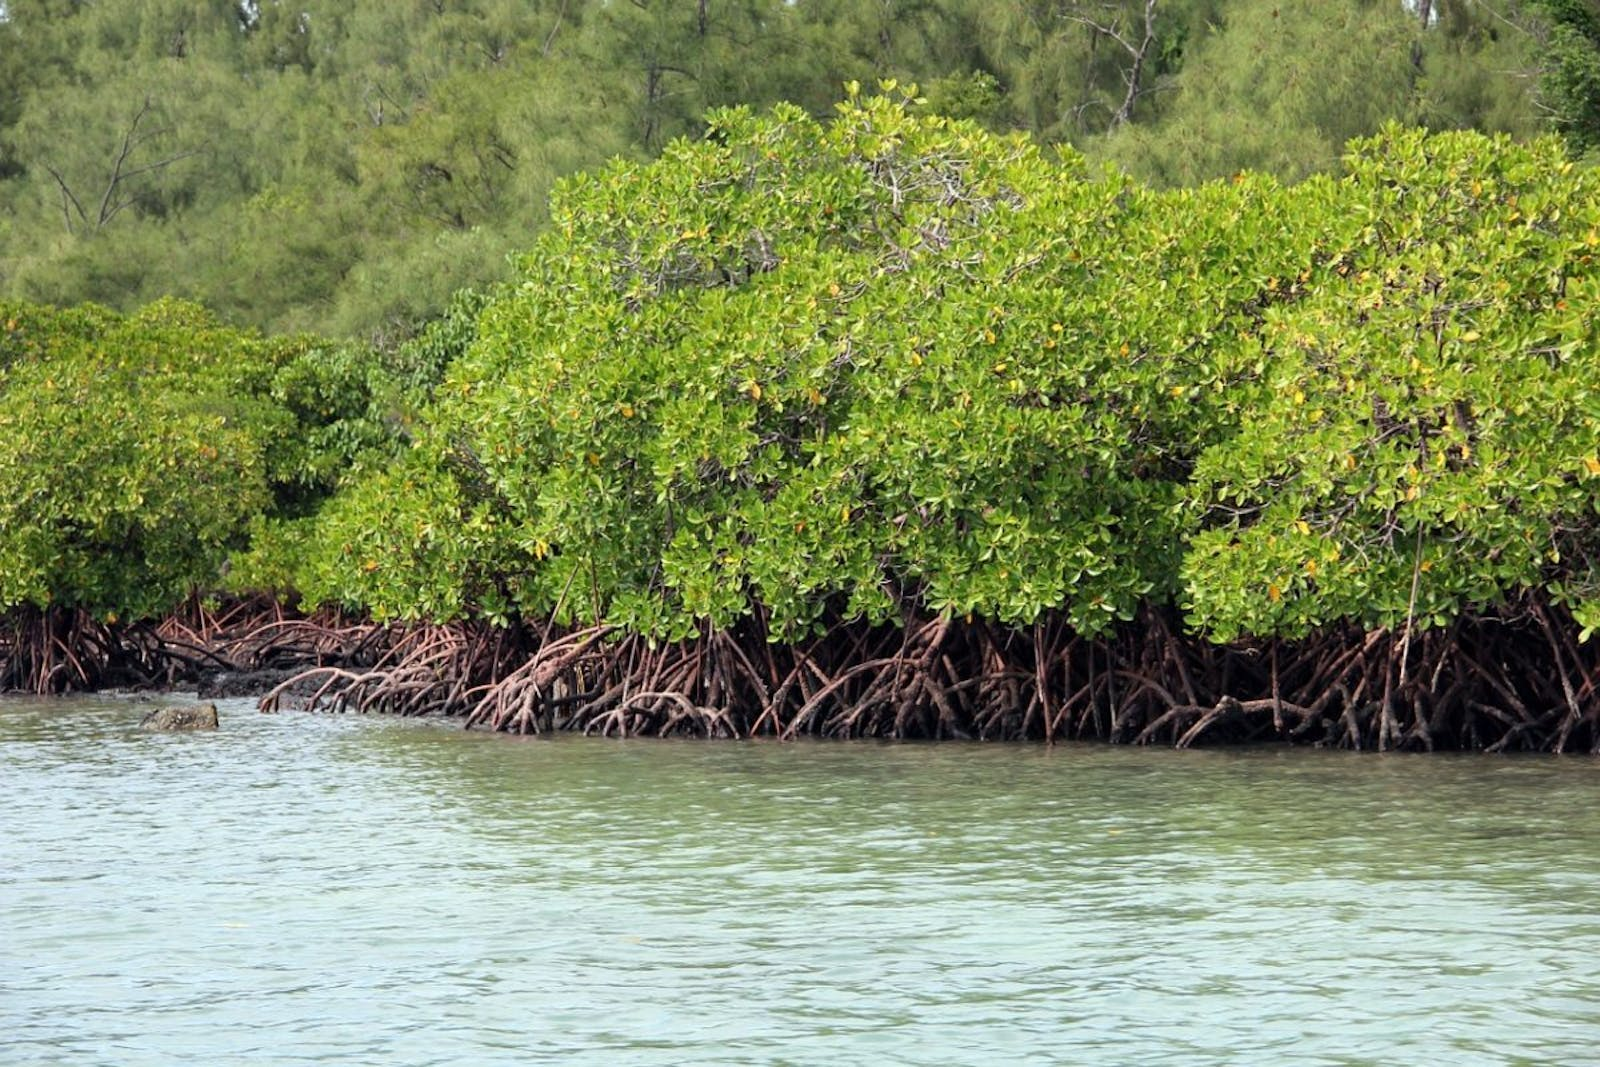 Southern Africa Mangroves